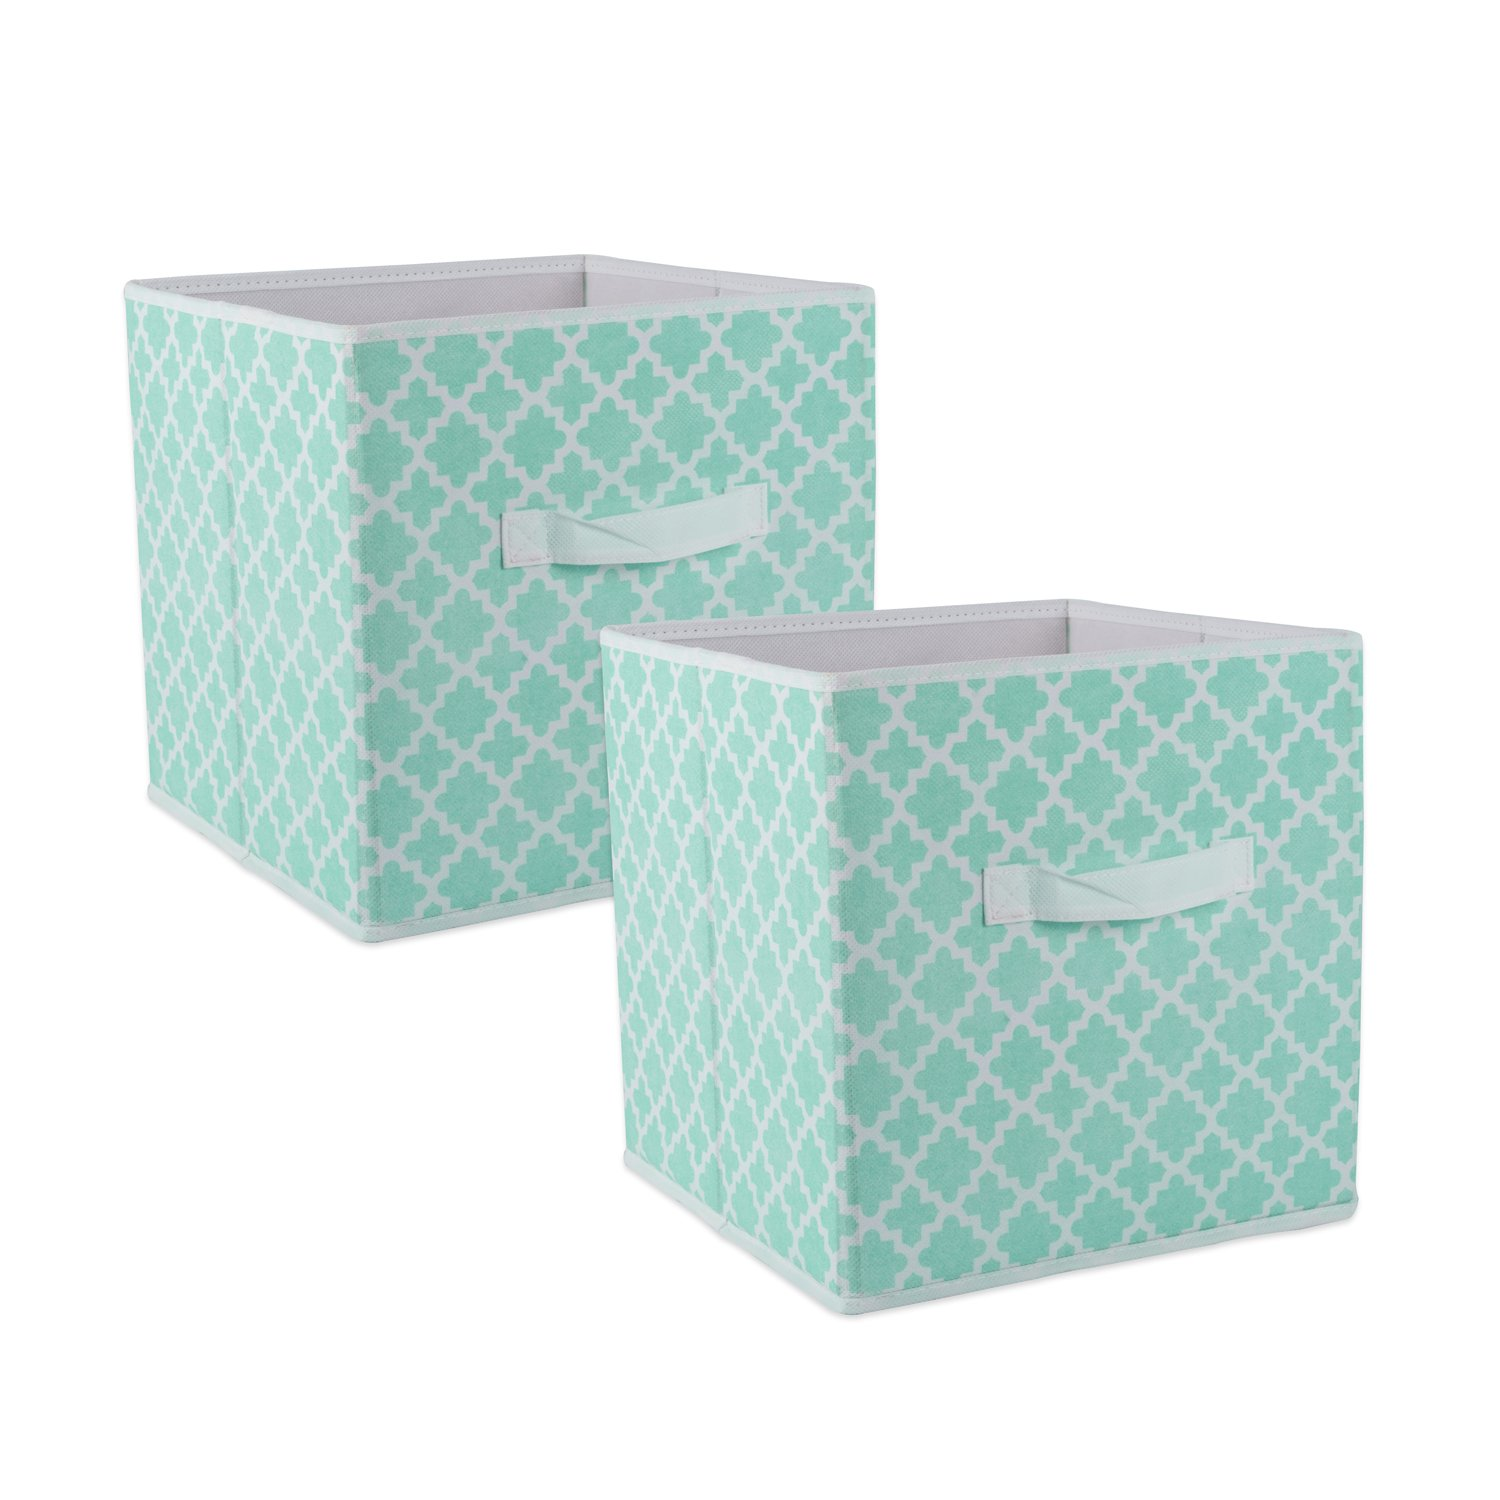 DII Fabric Storage Bins for Nursery, Offices, Home Organization, Containers are Made to Fit Standard Cube Organizers (11x11x11) Lattice Aqua - Set of 2 by DII